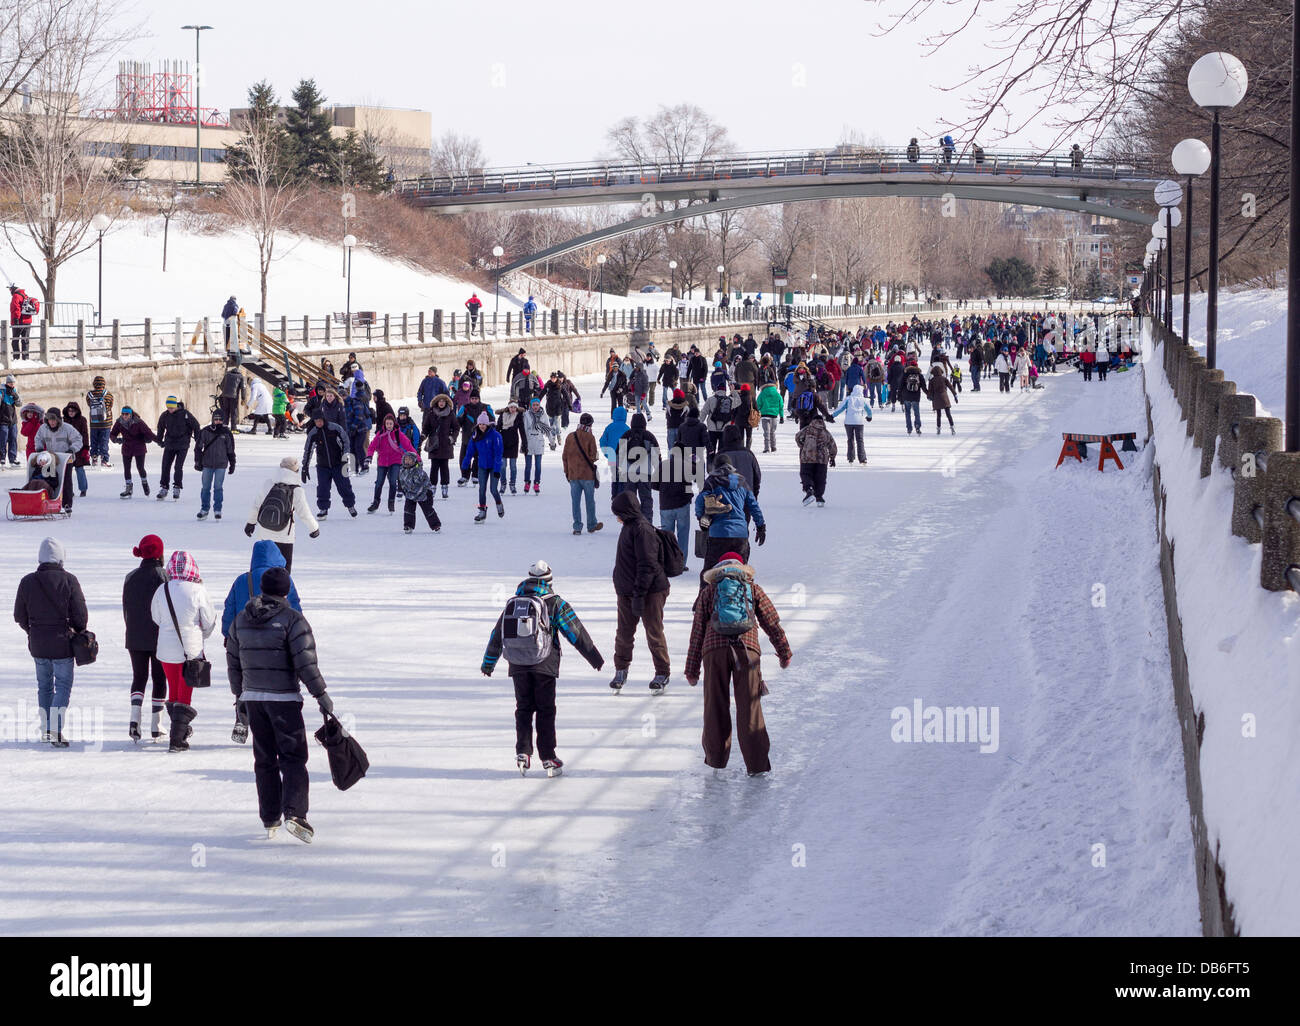 Crowds fill the Rideau Skateway during Winterlude. Large crowds of people take to the ice during Ottawa's winterlude - Stock Image